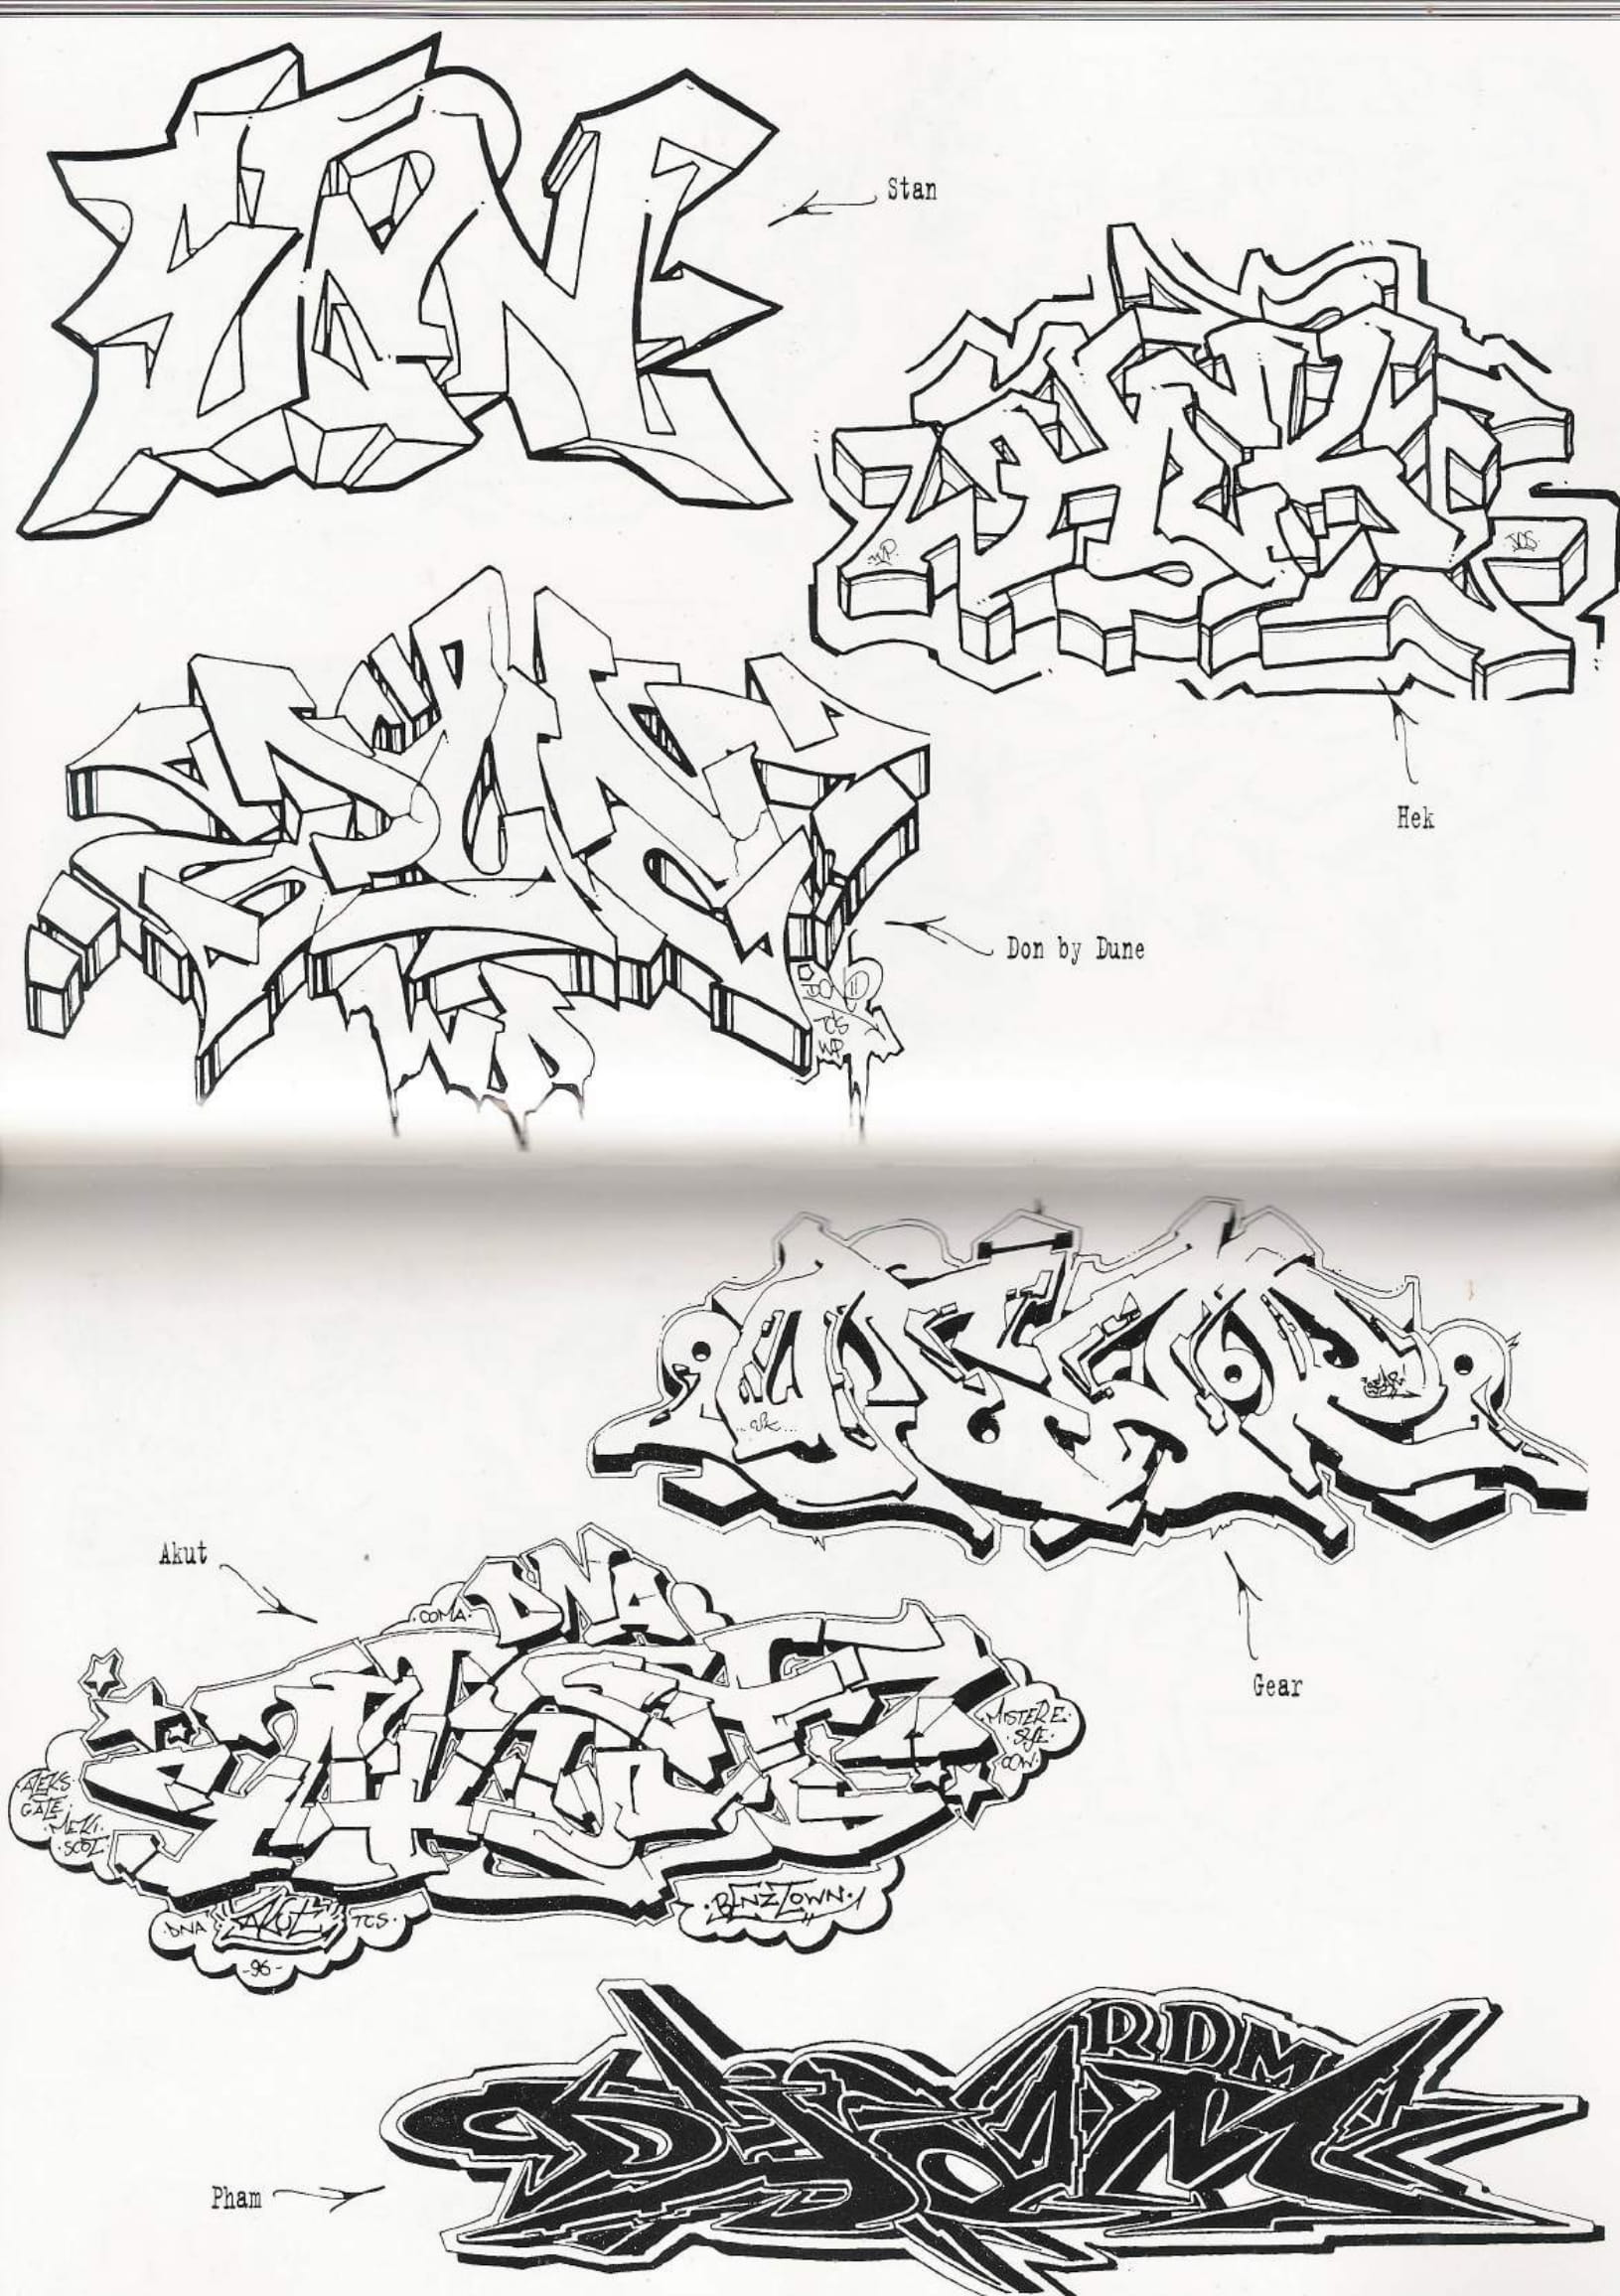 Backjumps.-.Sketchbook-AEROHOLICS-compressed-44.jpg